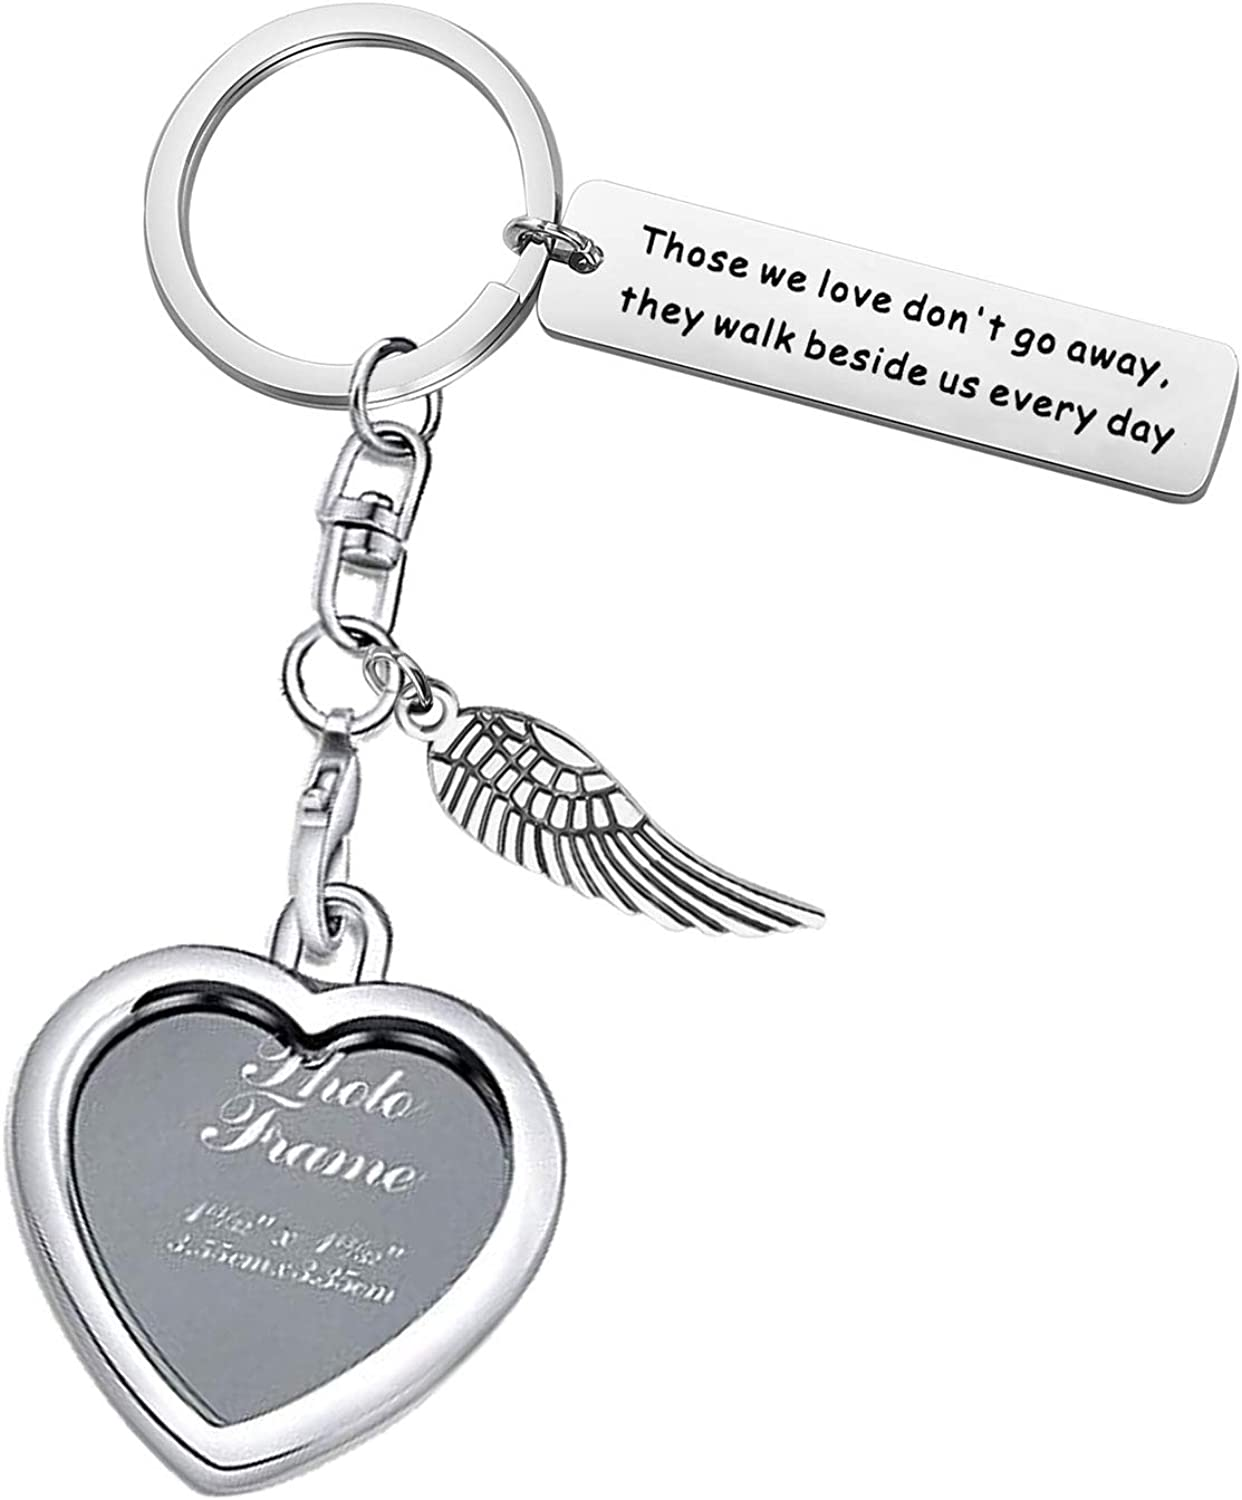 Photo Frame Keychain Memorial Gifts of Loved One Those We Love Don't Go Away